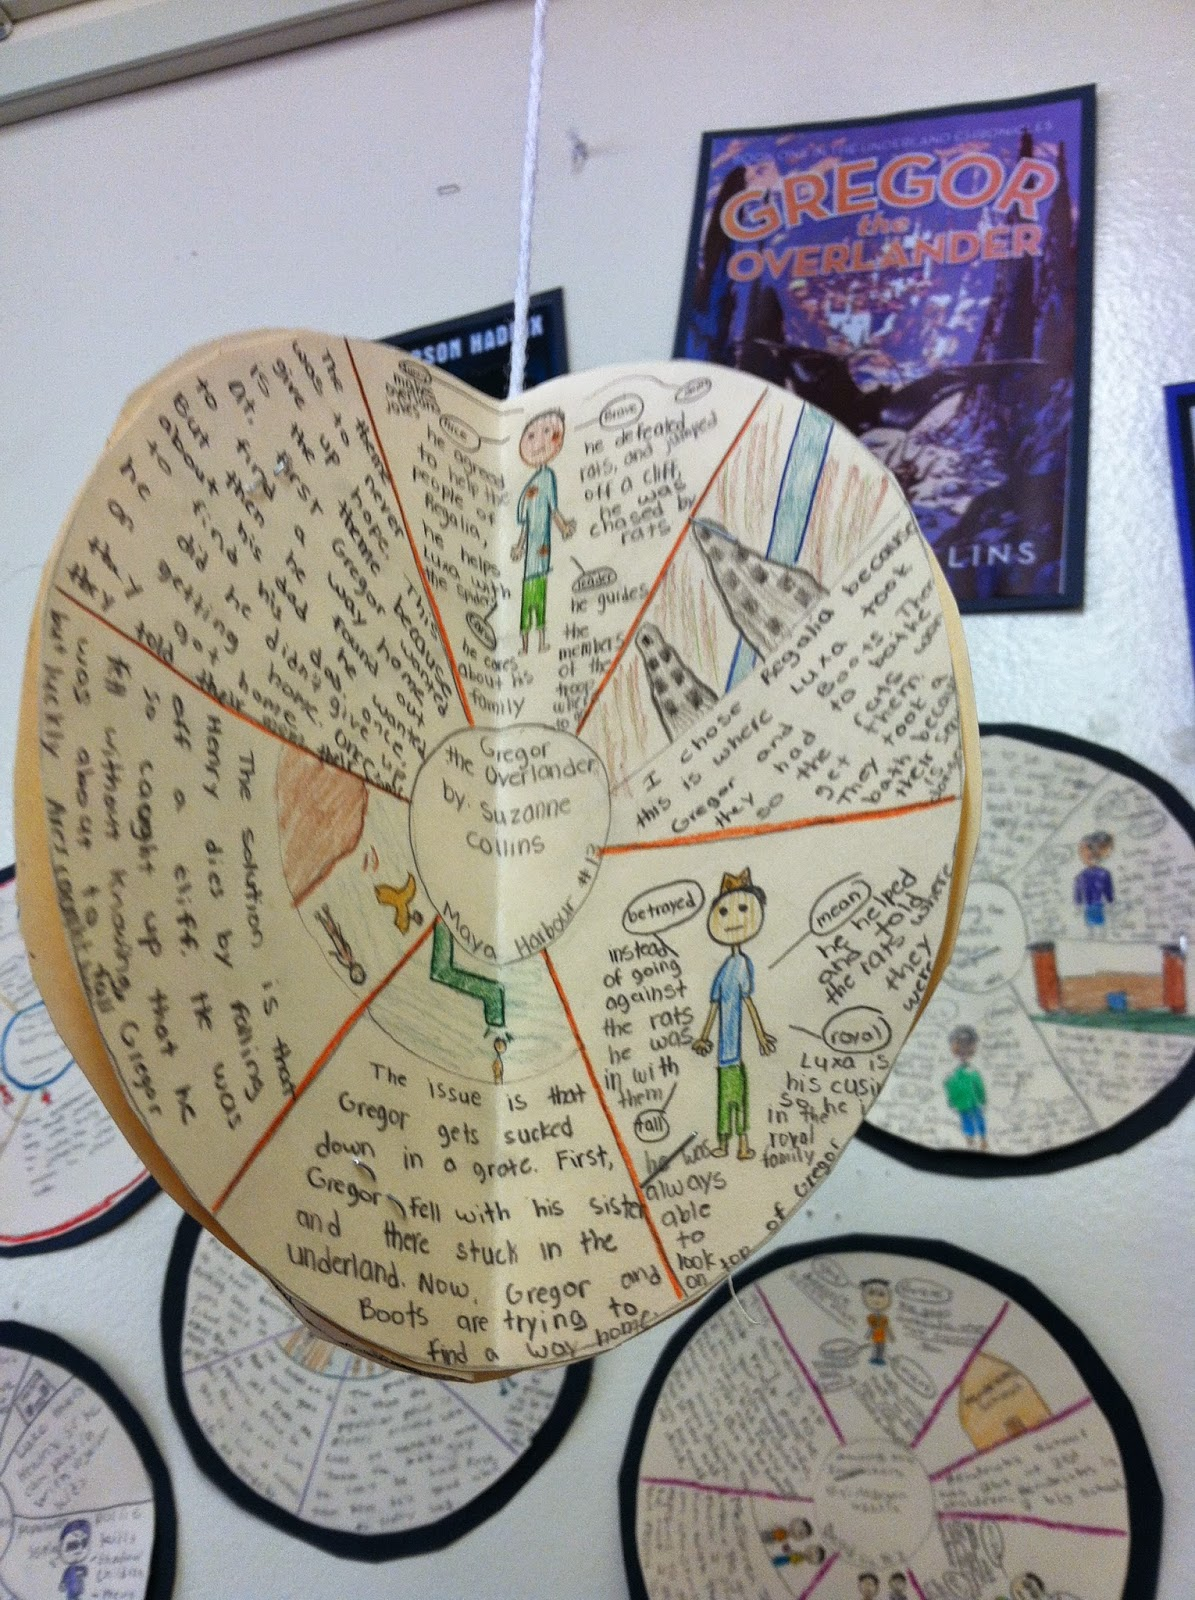 reading and writing projects Posts about reading and writing written by jackiespencer123.